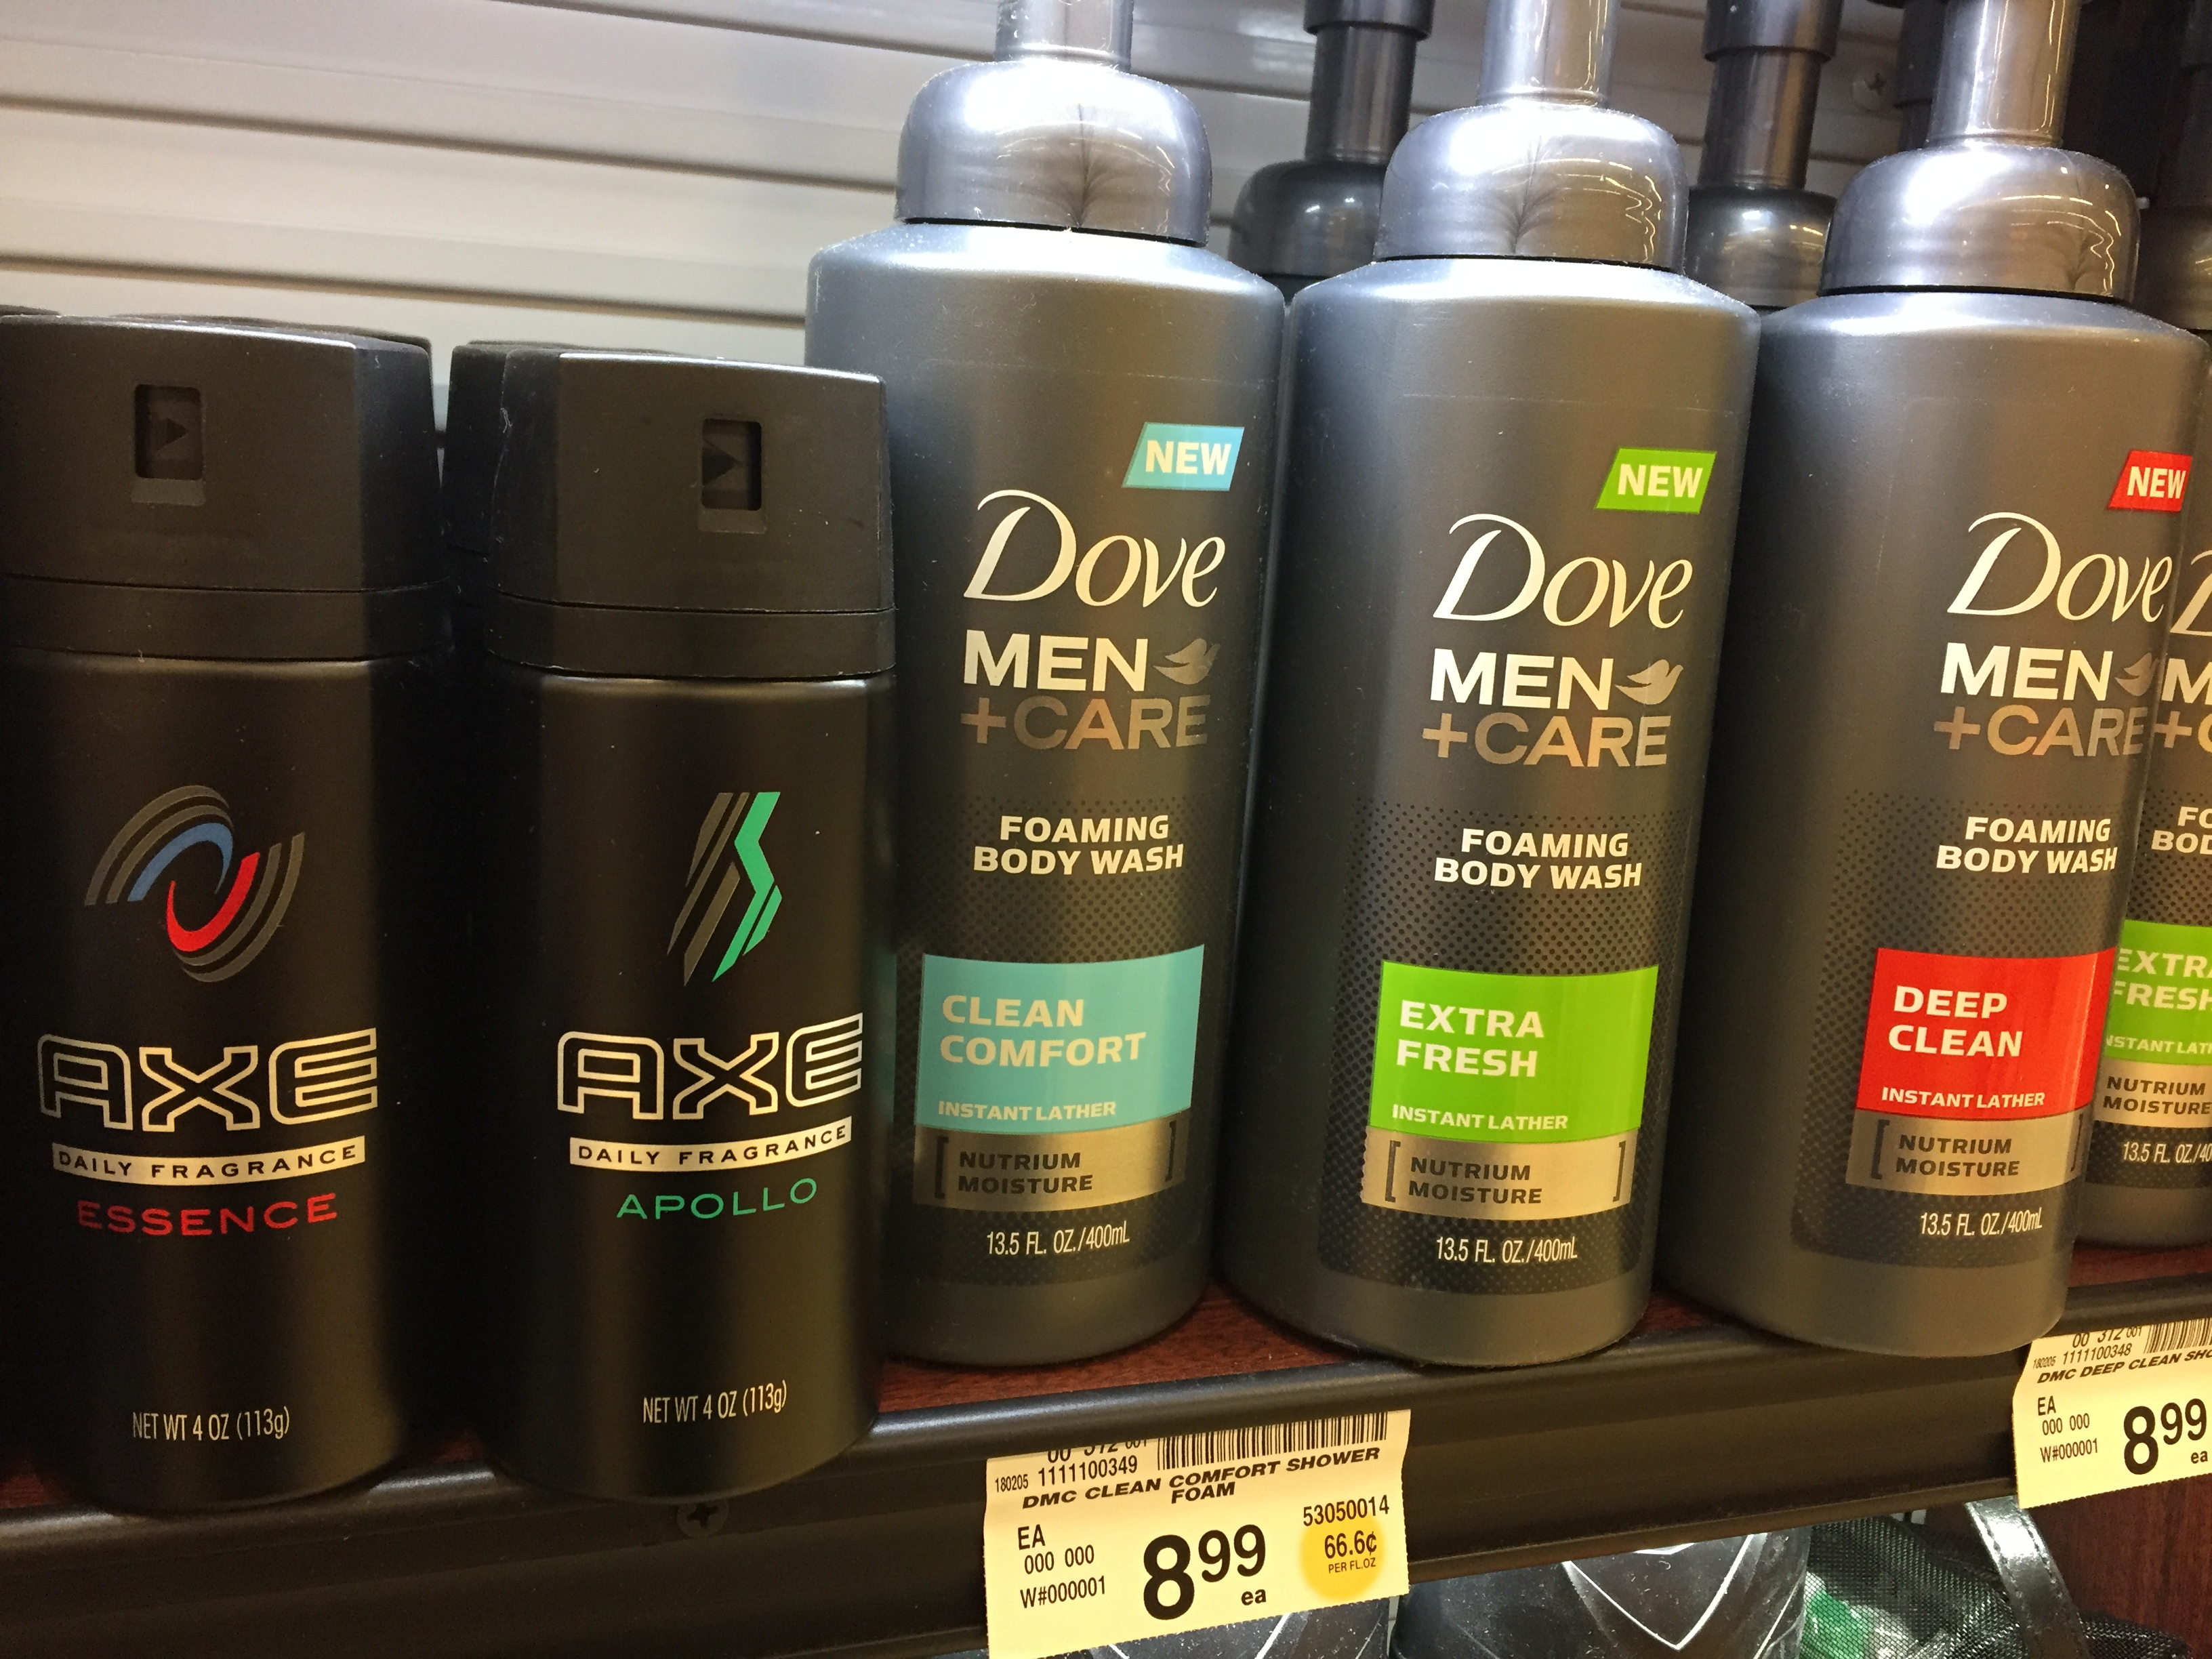 Dove Men+Care Foaming Body Wash at Randalls